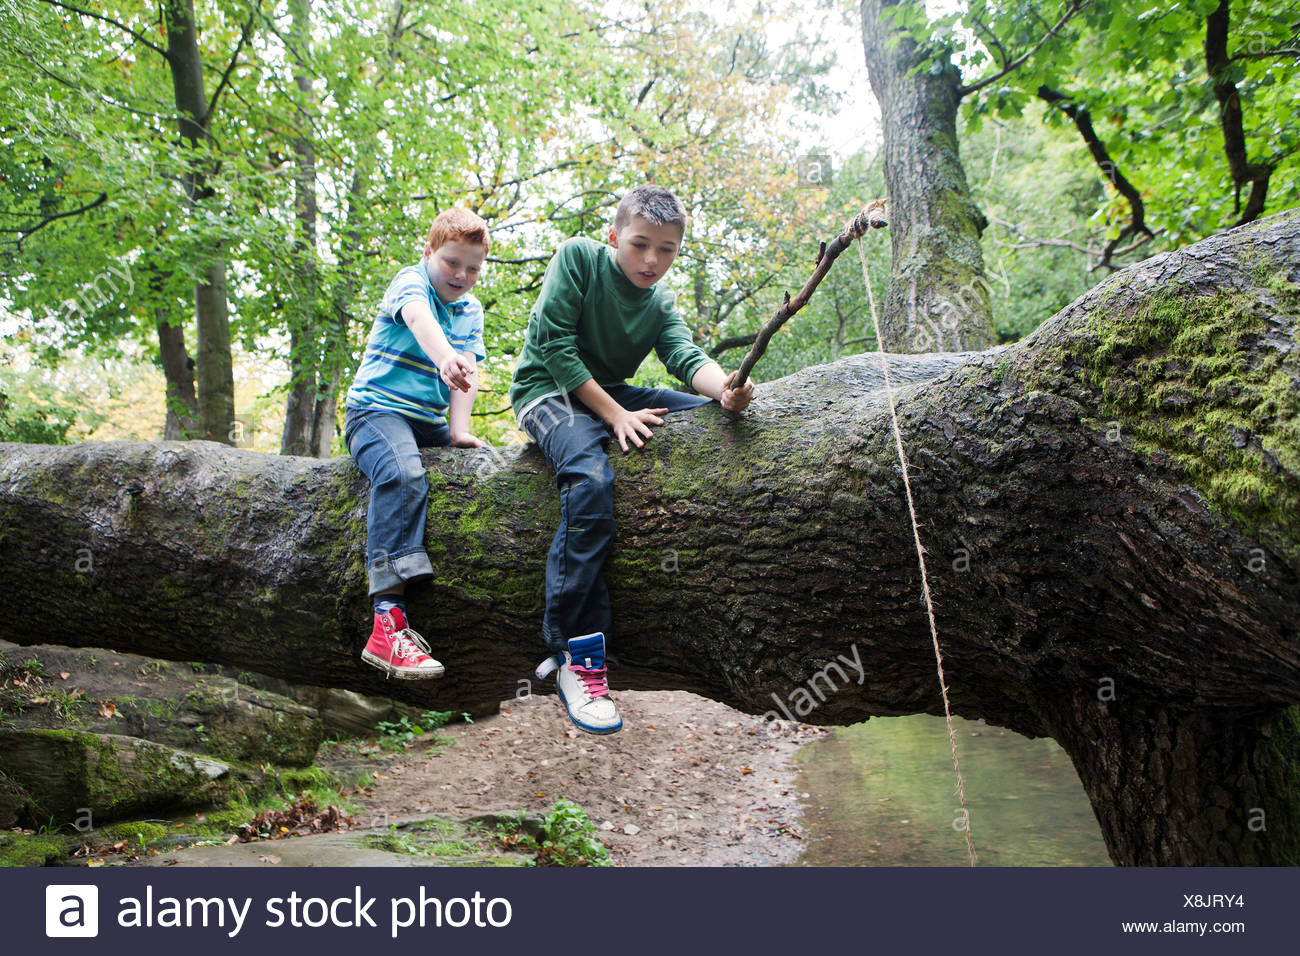 Boys fishing from a fallen tree - Stock Image